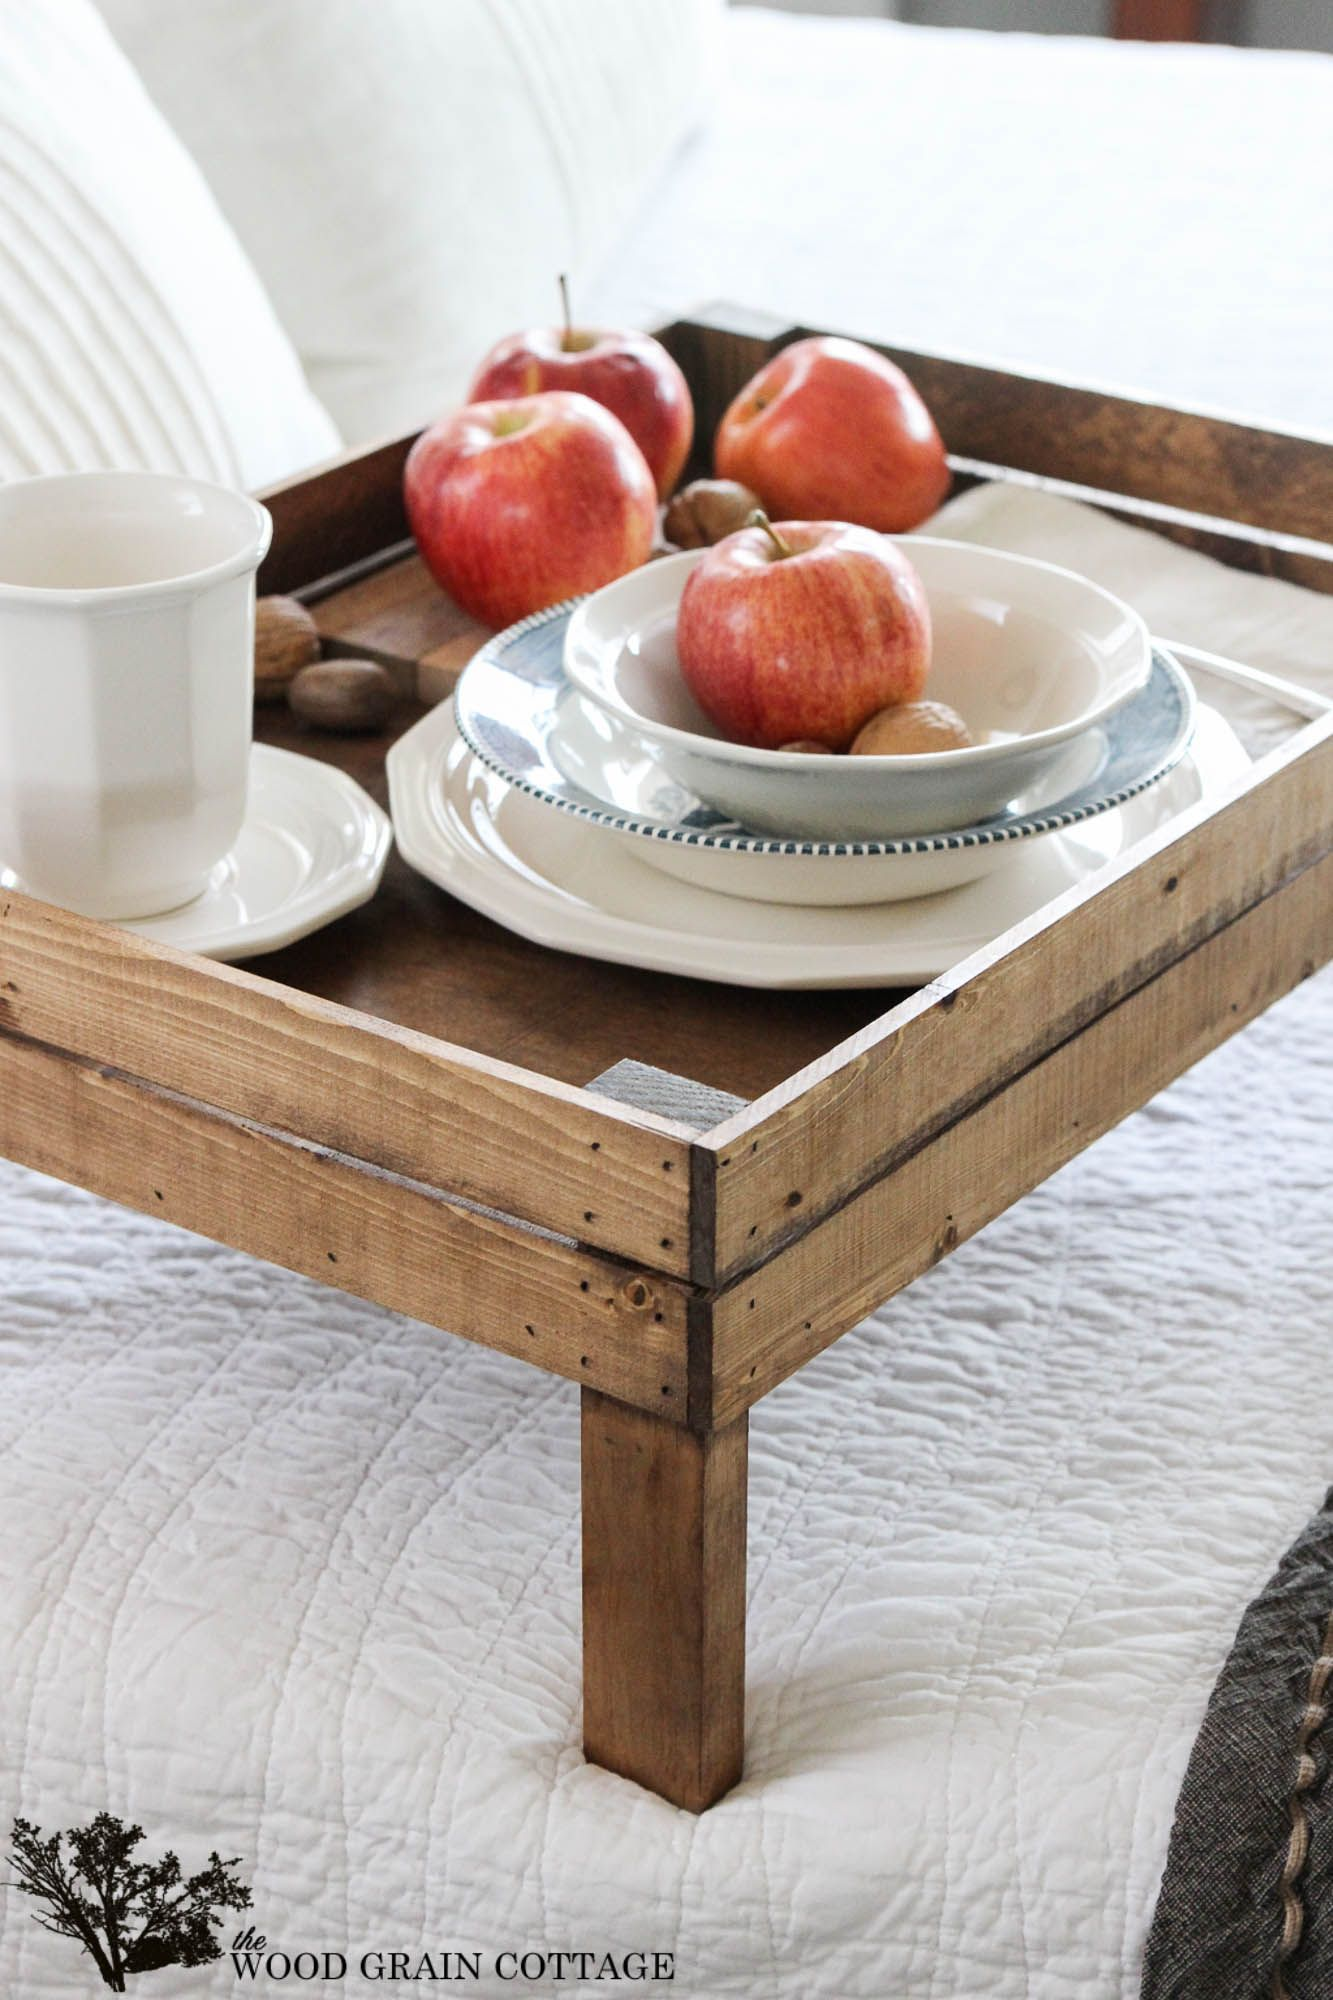 Breakfast Trays For Bed Enchanting Breakfast In Bed Tray  Bed Time Routine Bed Tray And Trays Inspiration Design